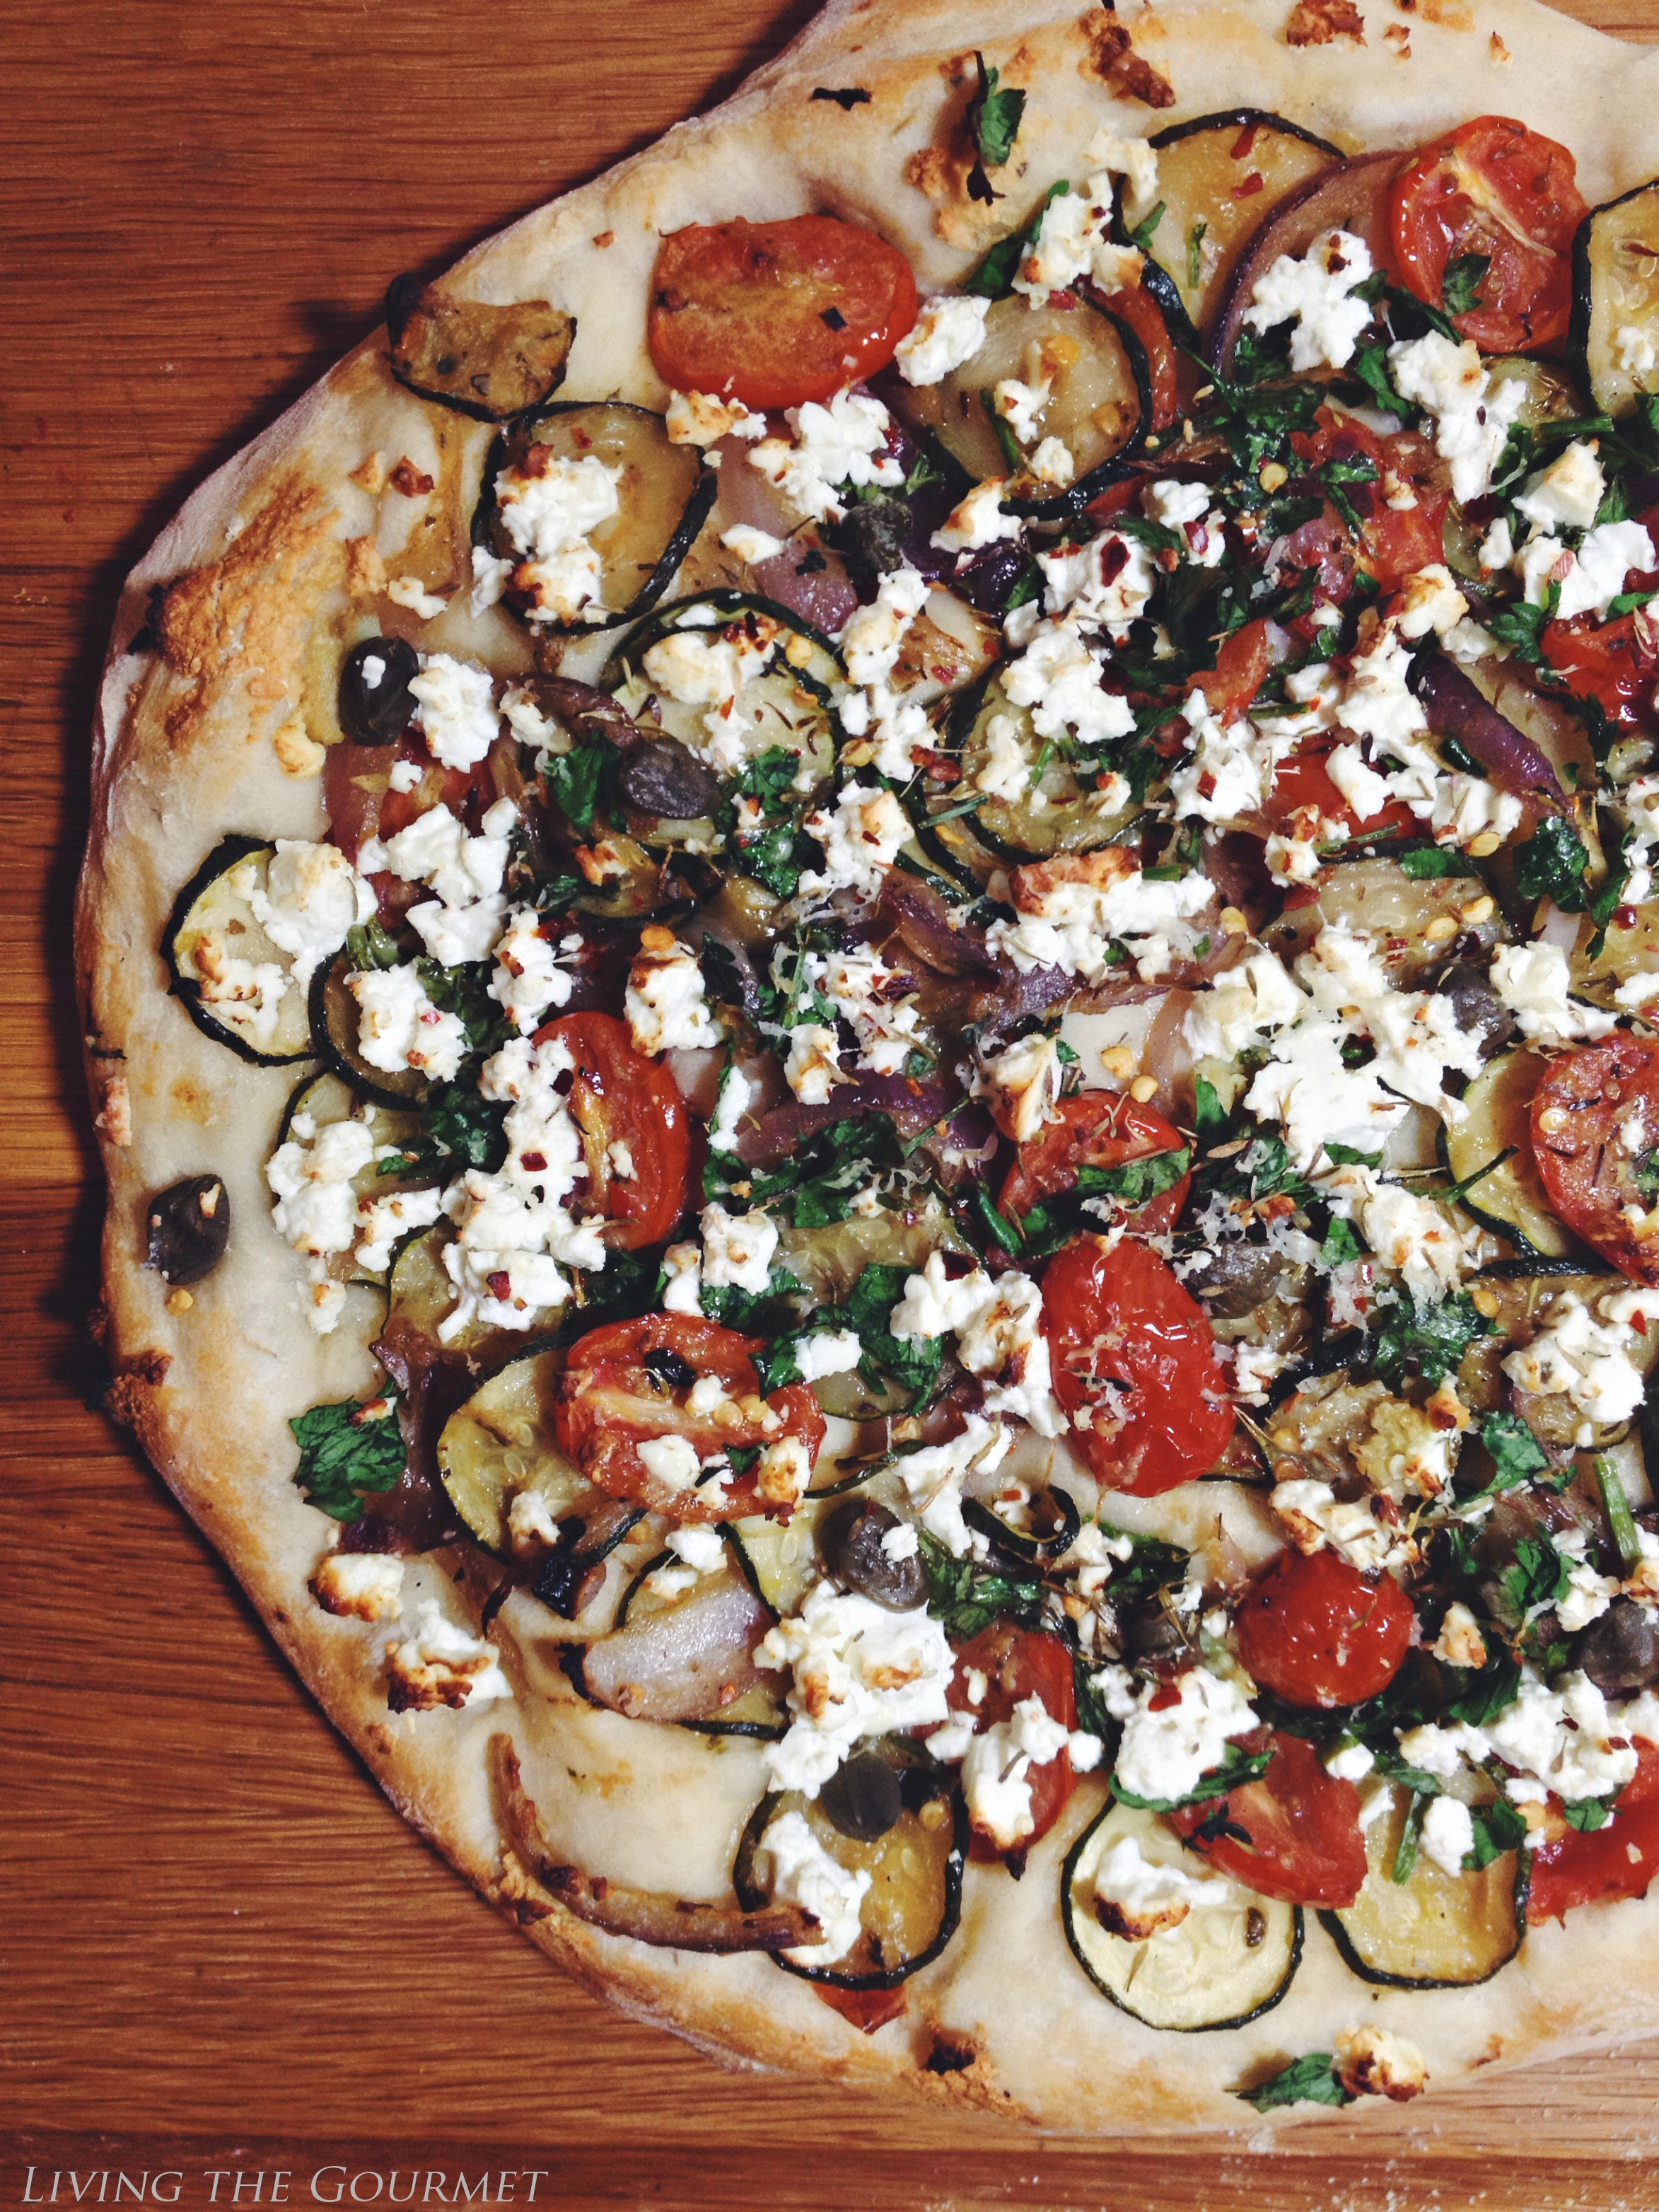 Living the Gourmet: Fresh Veggie & Feta Pizza